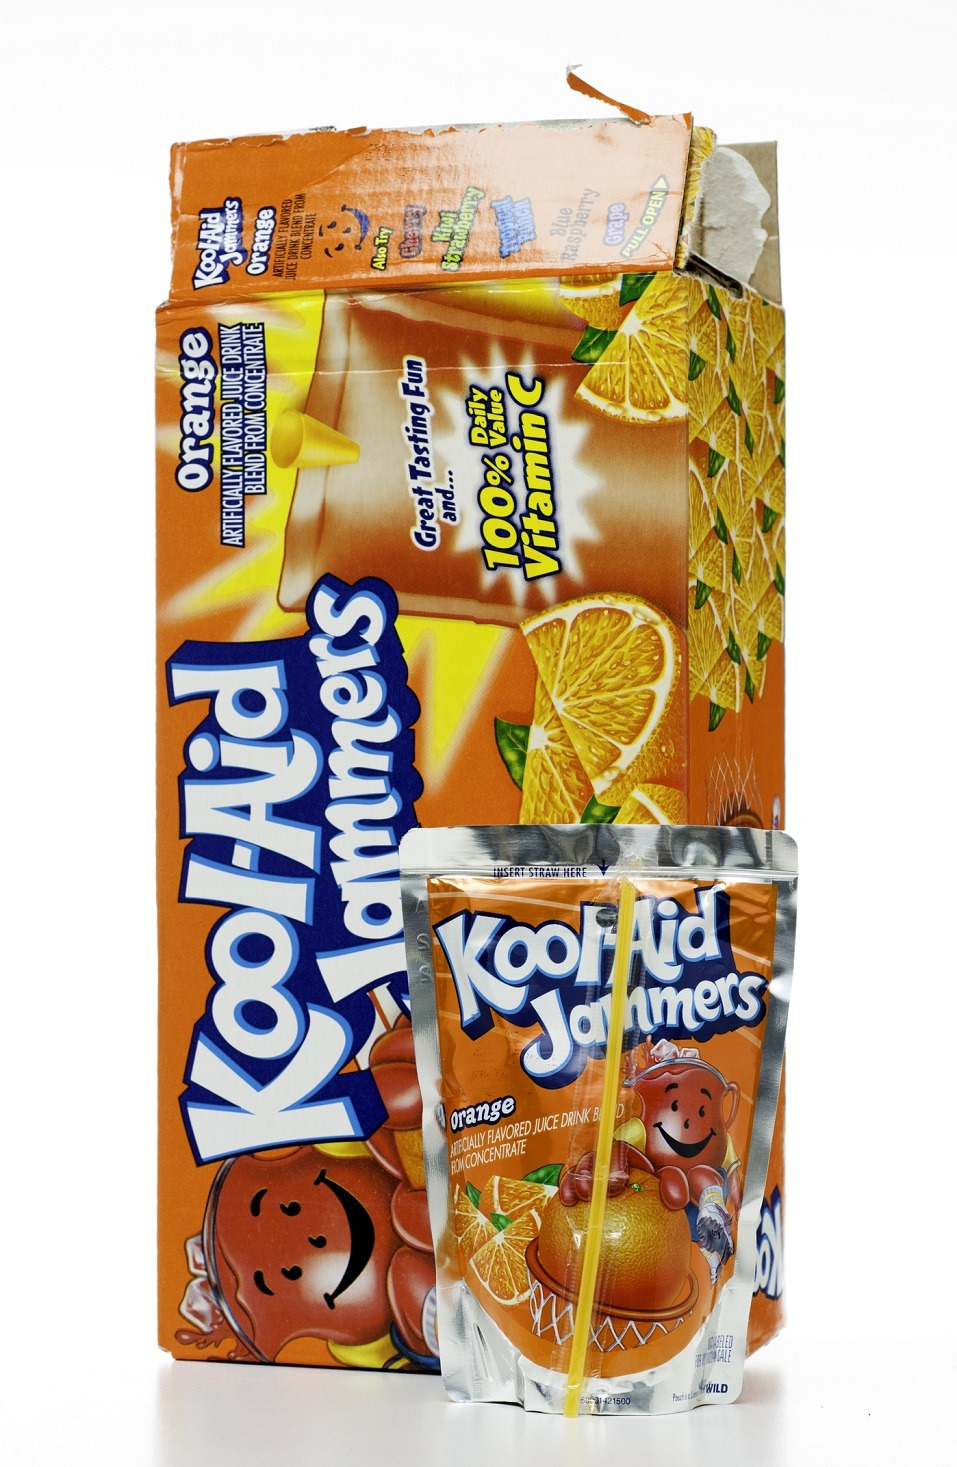 An opened box of orange flavored Kool-Aid Jammers